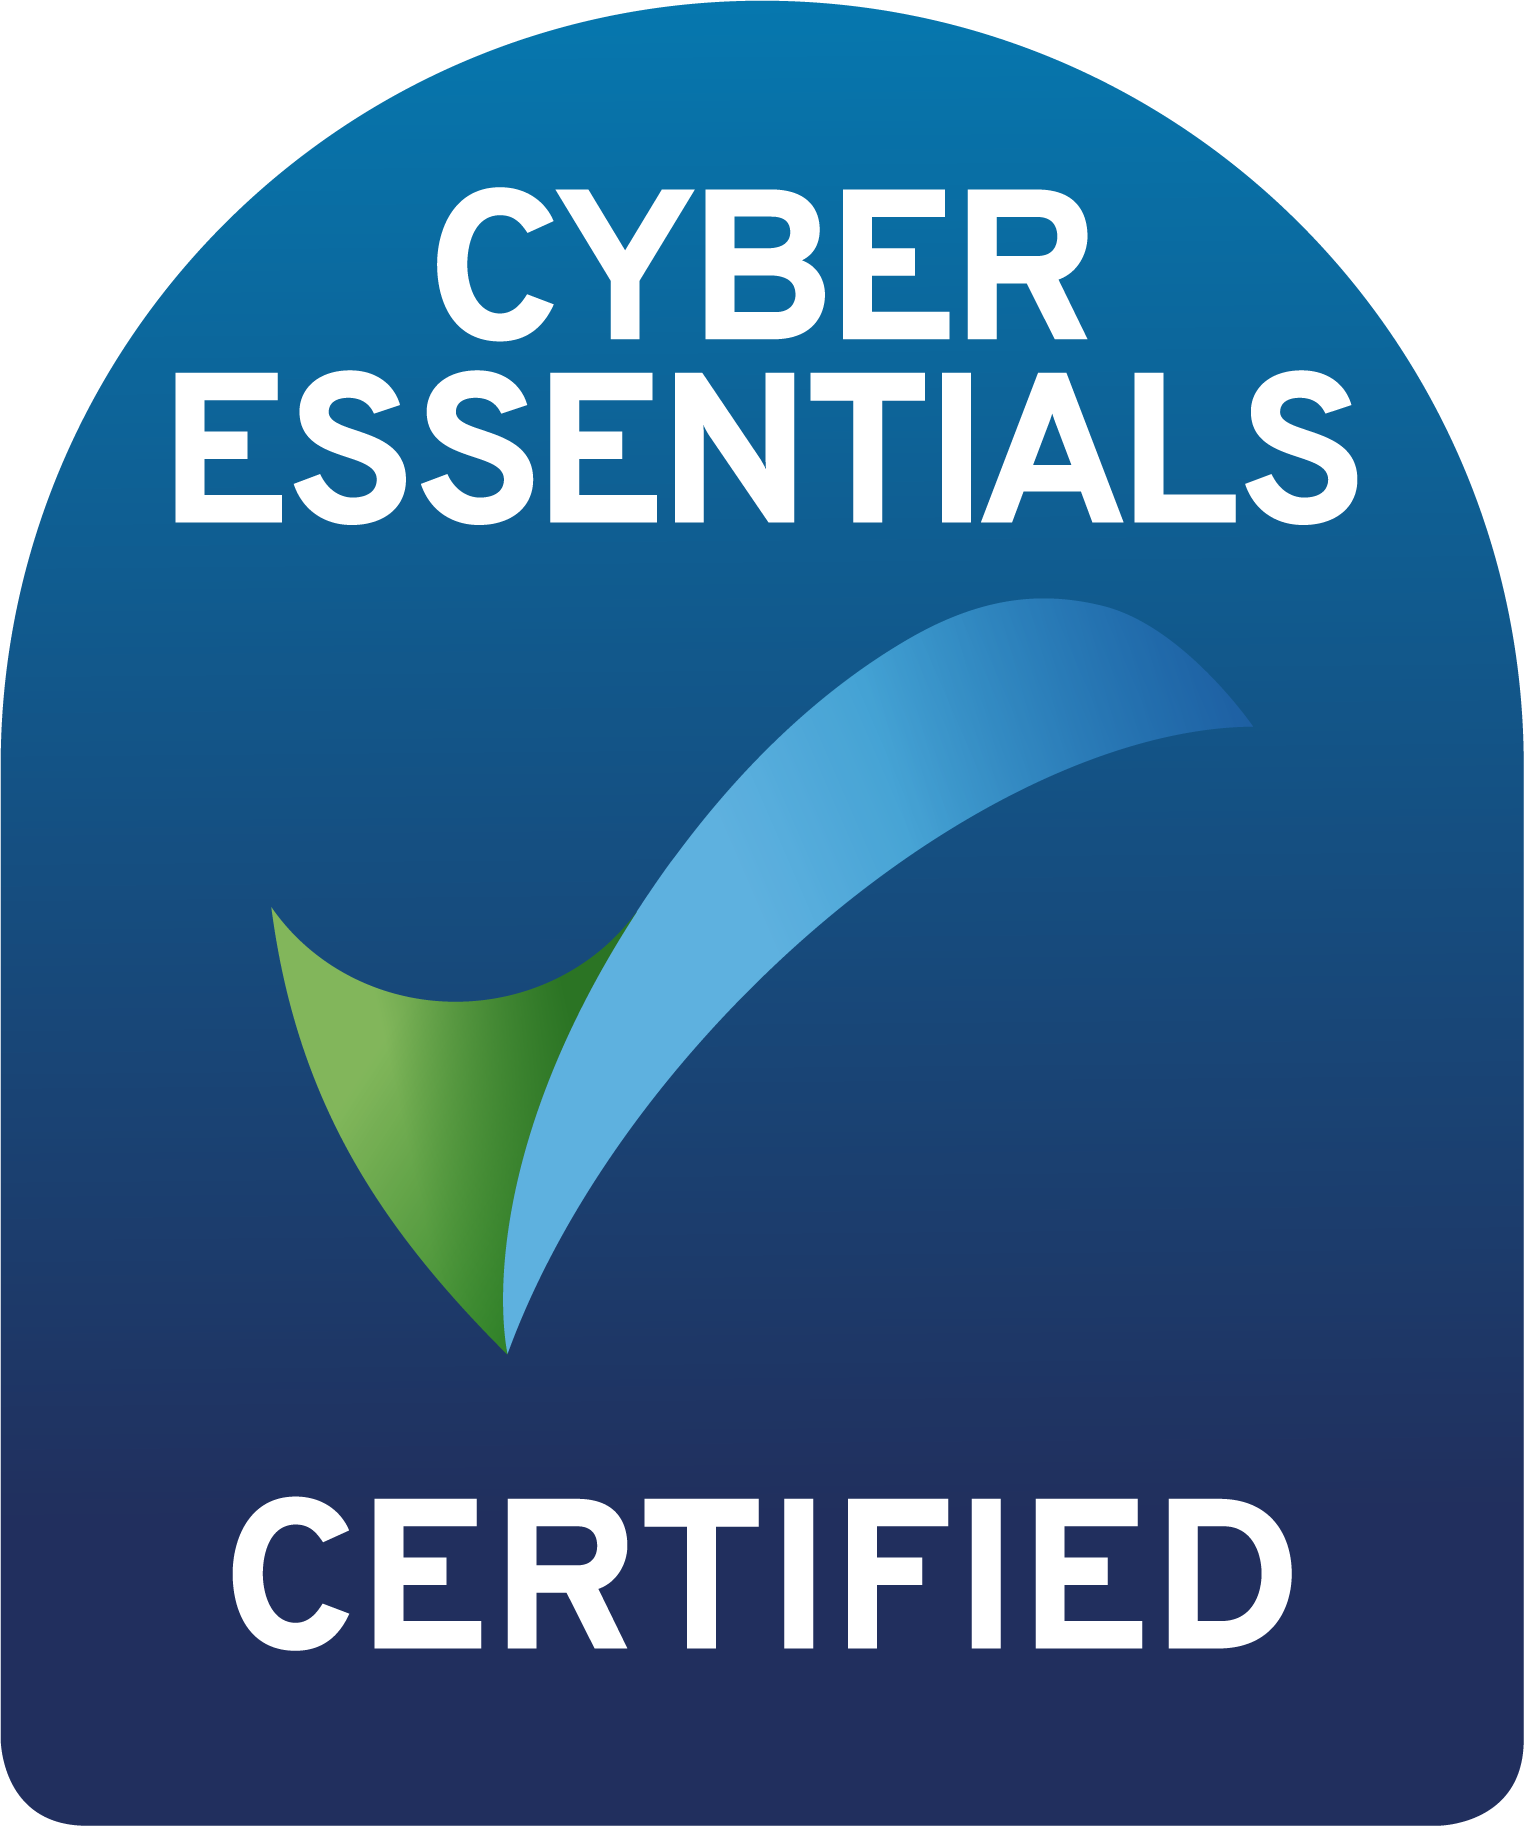 Cyber Essentials Certification Mark